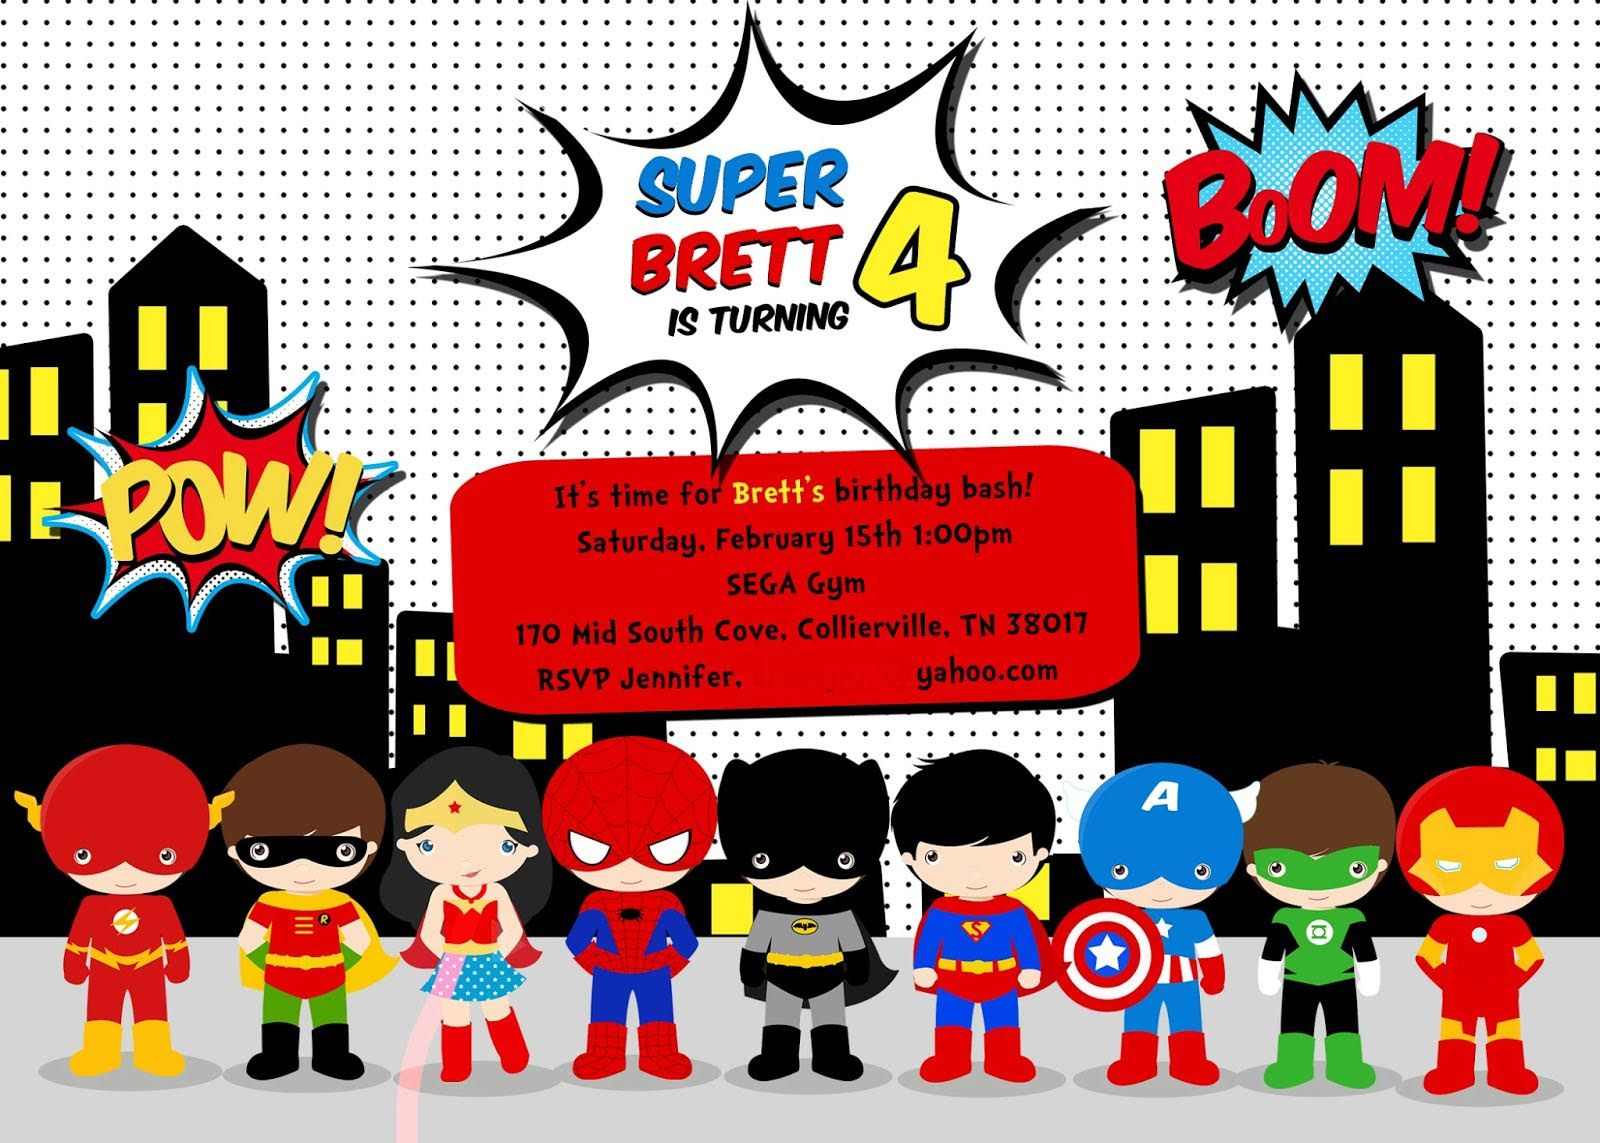 Free Superhero Birthday Party Invitation Templates | Birthday Party ...